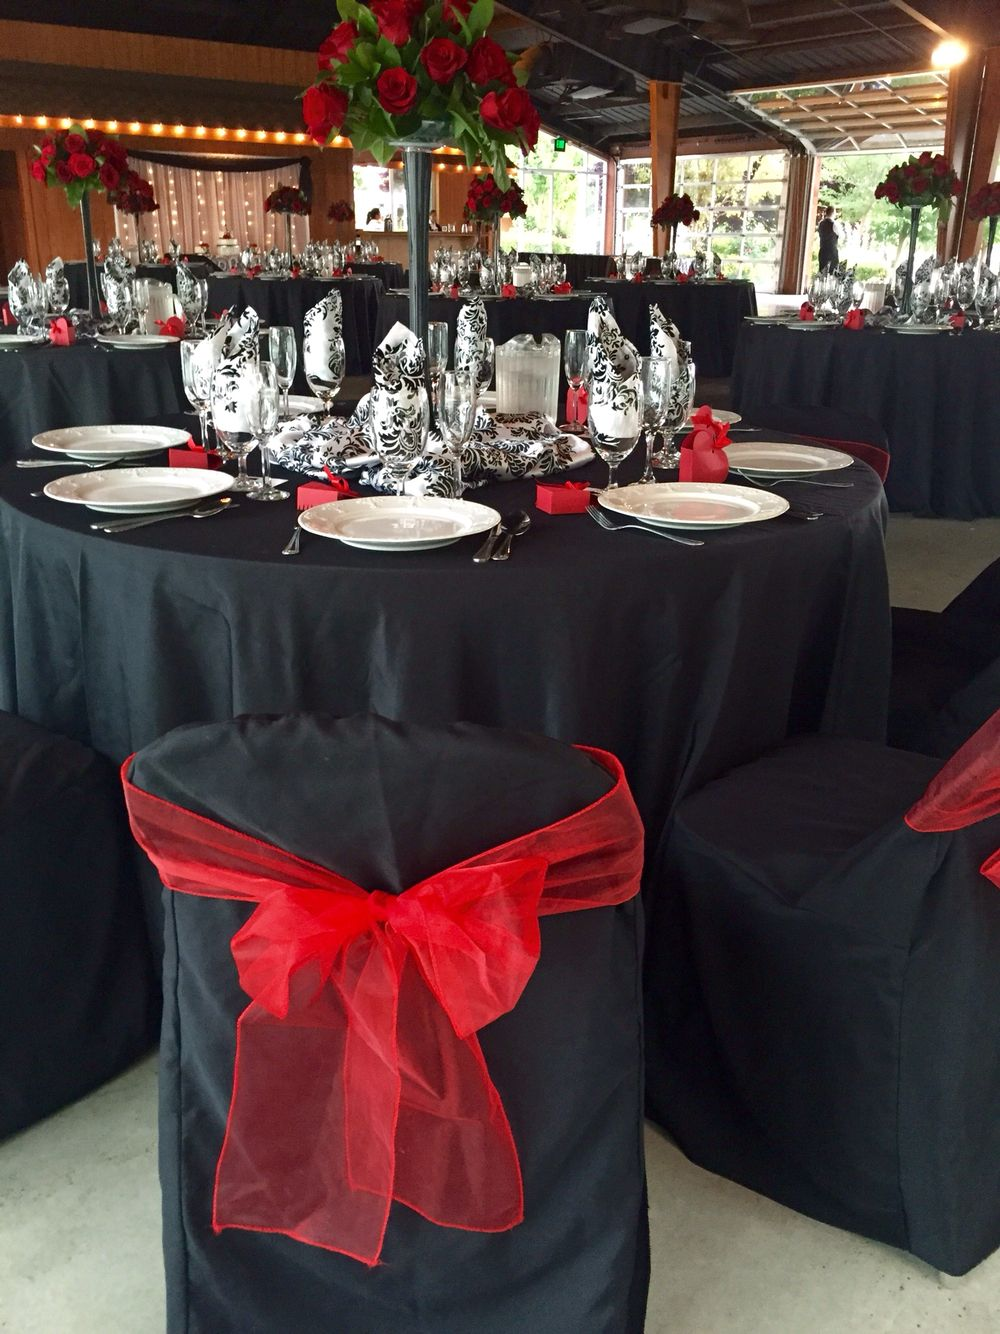 Black Table Cloth Damask Satin Overlay Bunched In Middle Of Table